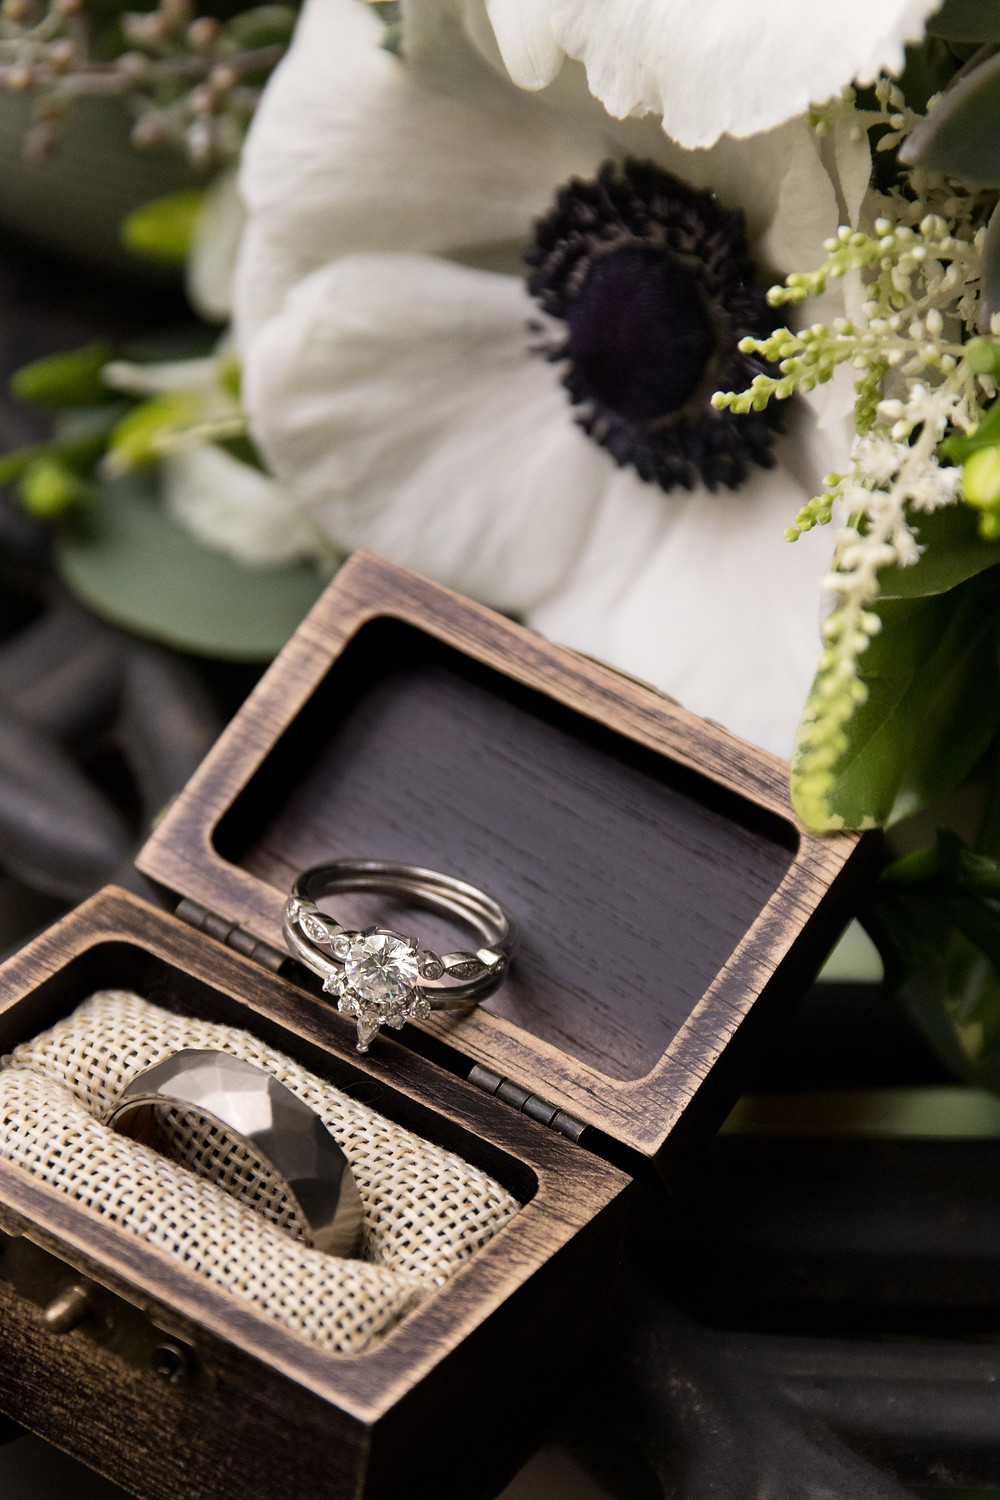 diamond engagement ring with wedding band ring box and bridal bouquet